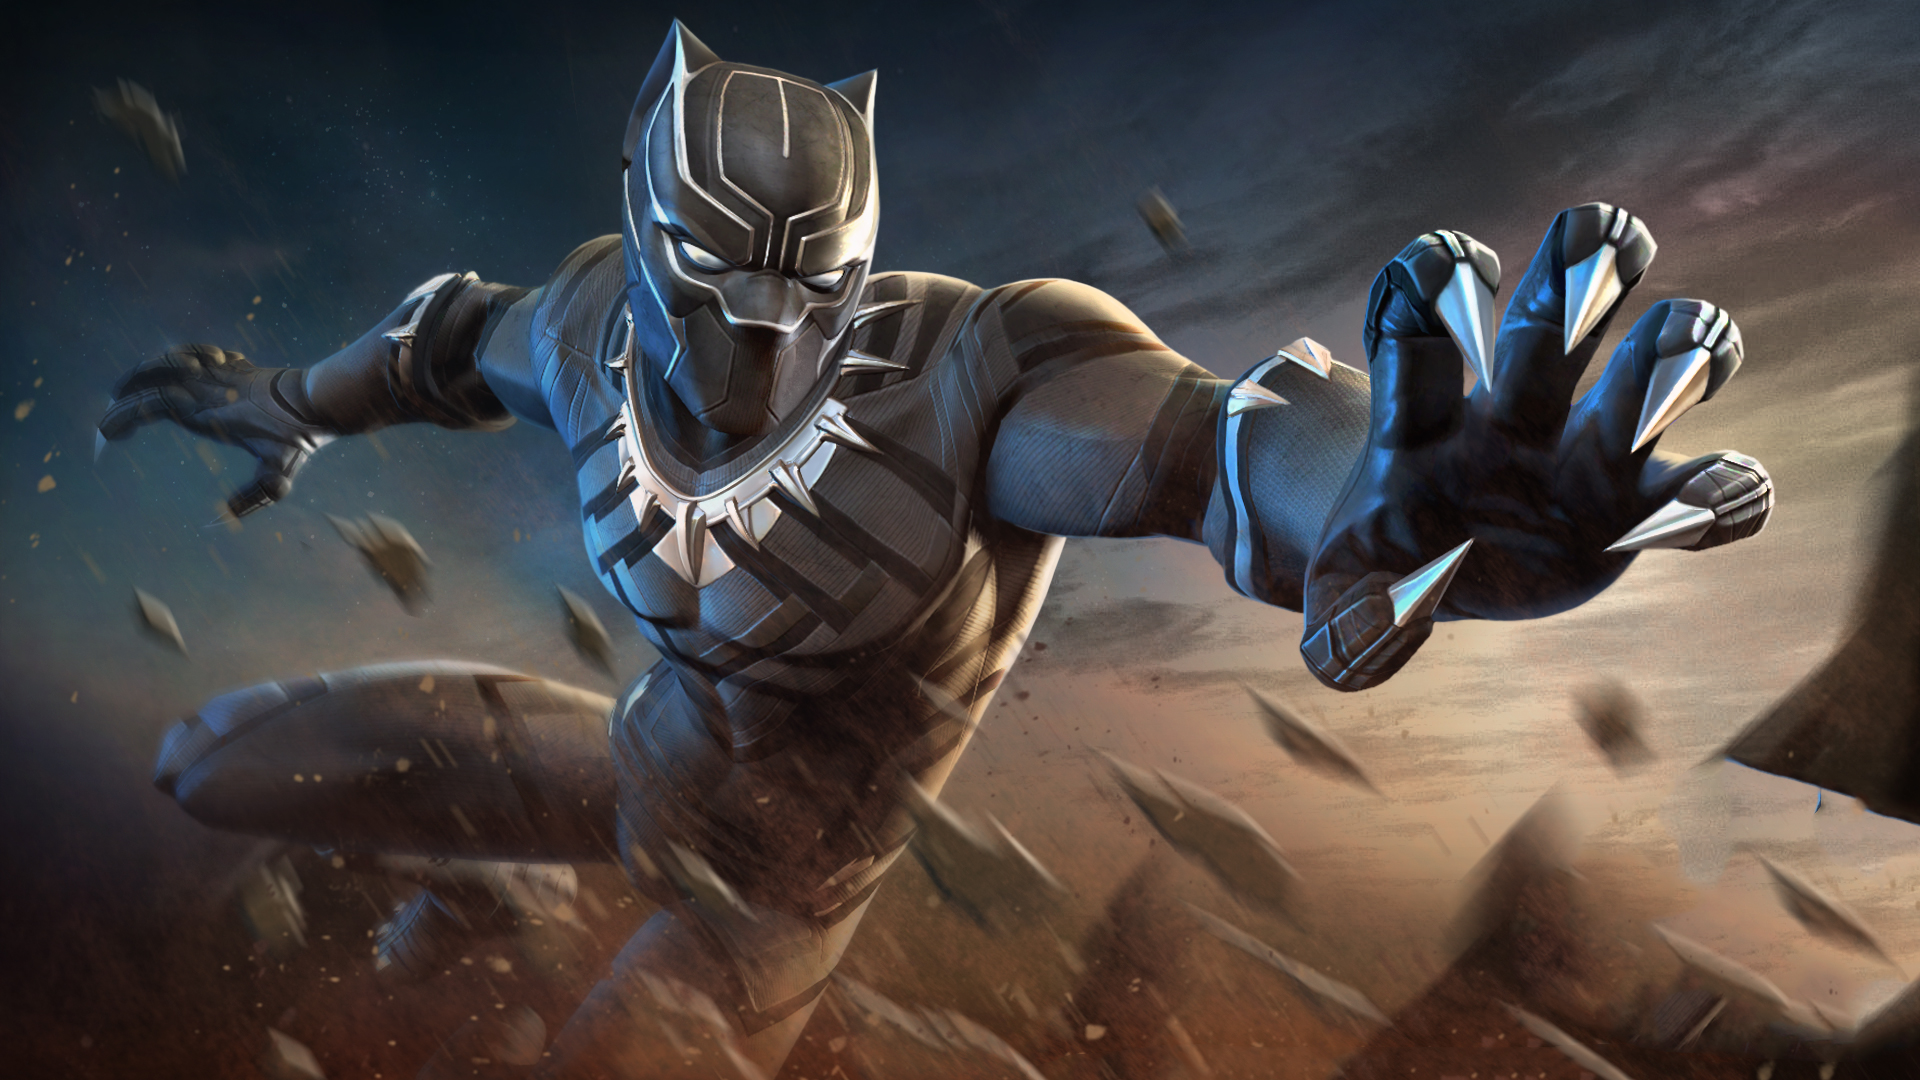 2048x1152 black panther marvel contest of champions 2048x1152